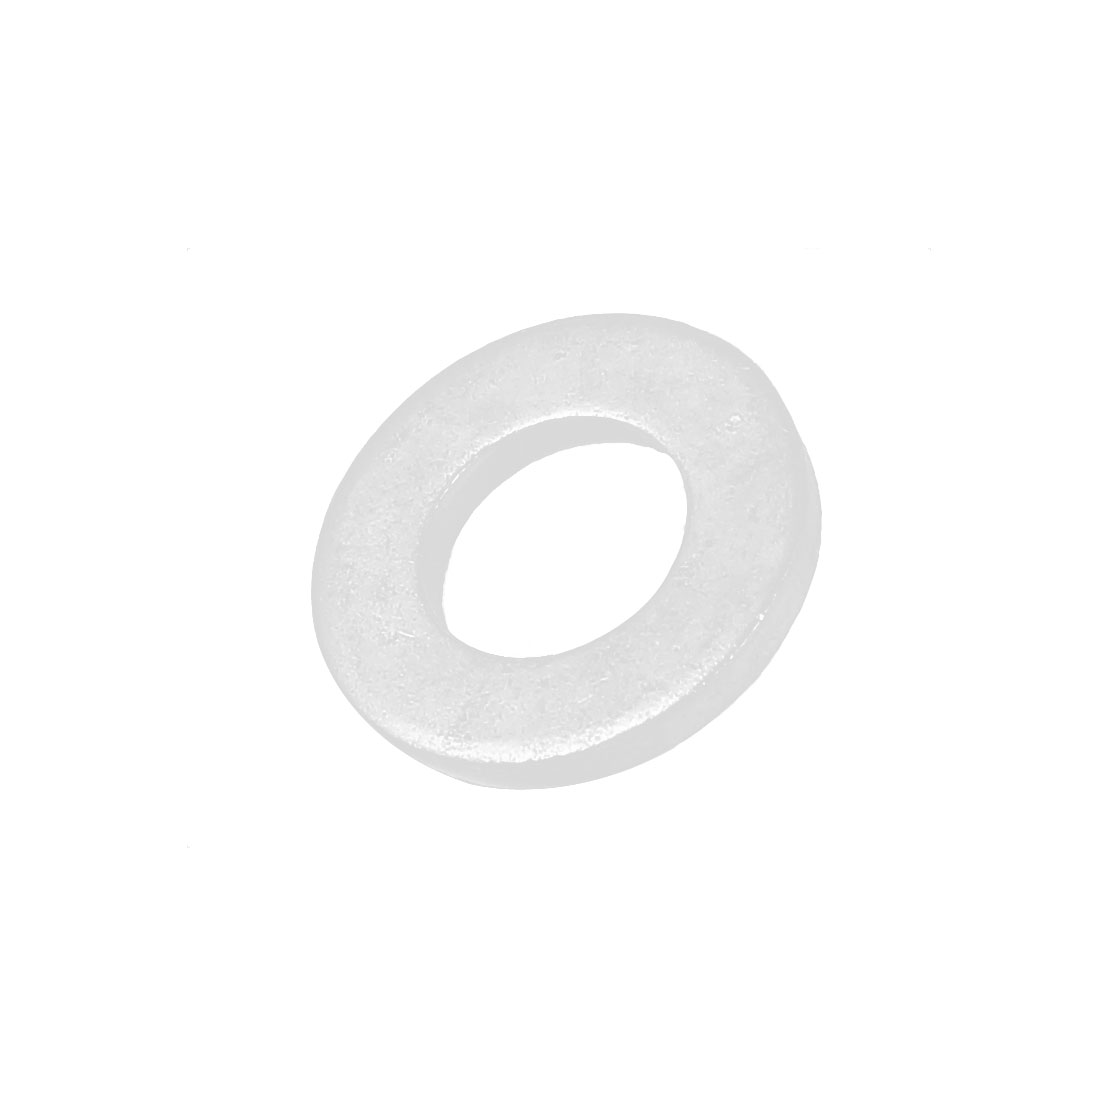 8mm x 16mm x 2mm Zinc Plated Flat Spacer Washer Gasket Fastener GB97